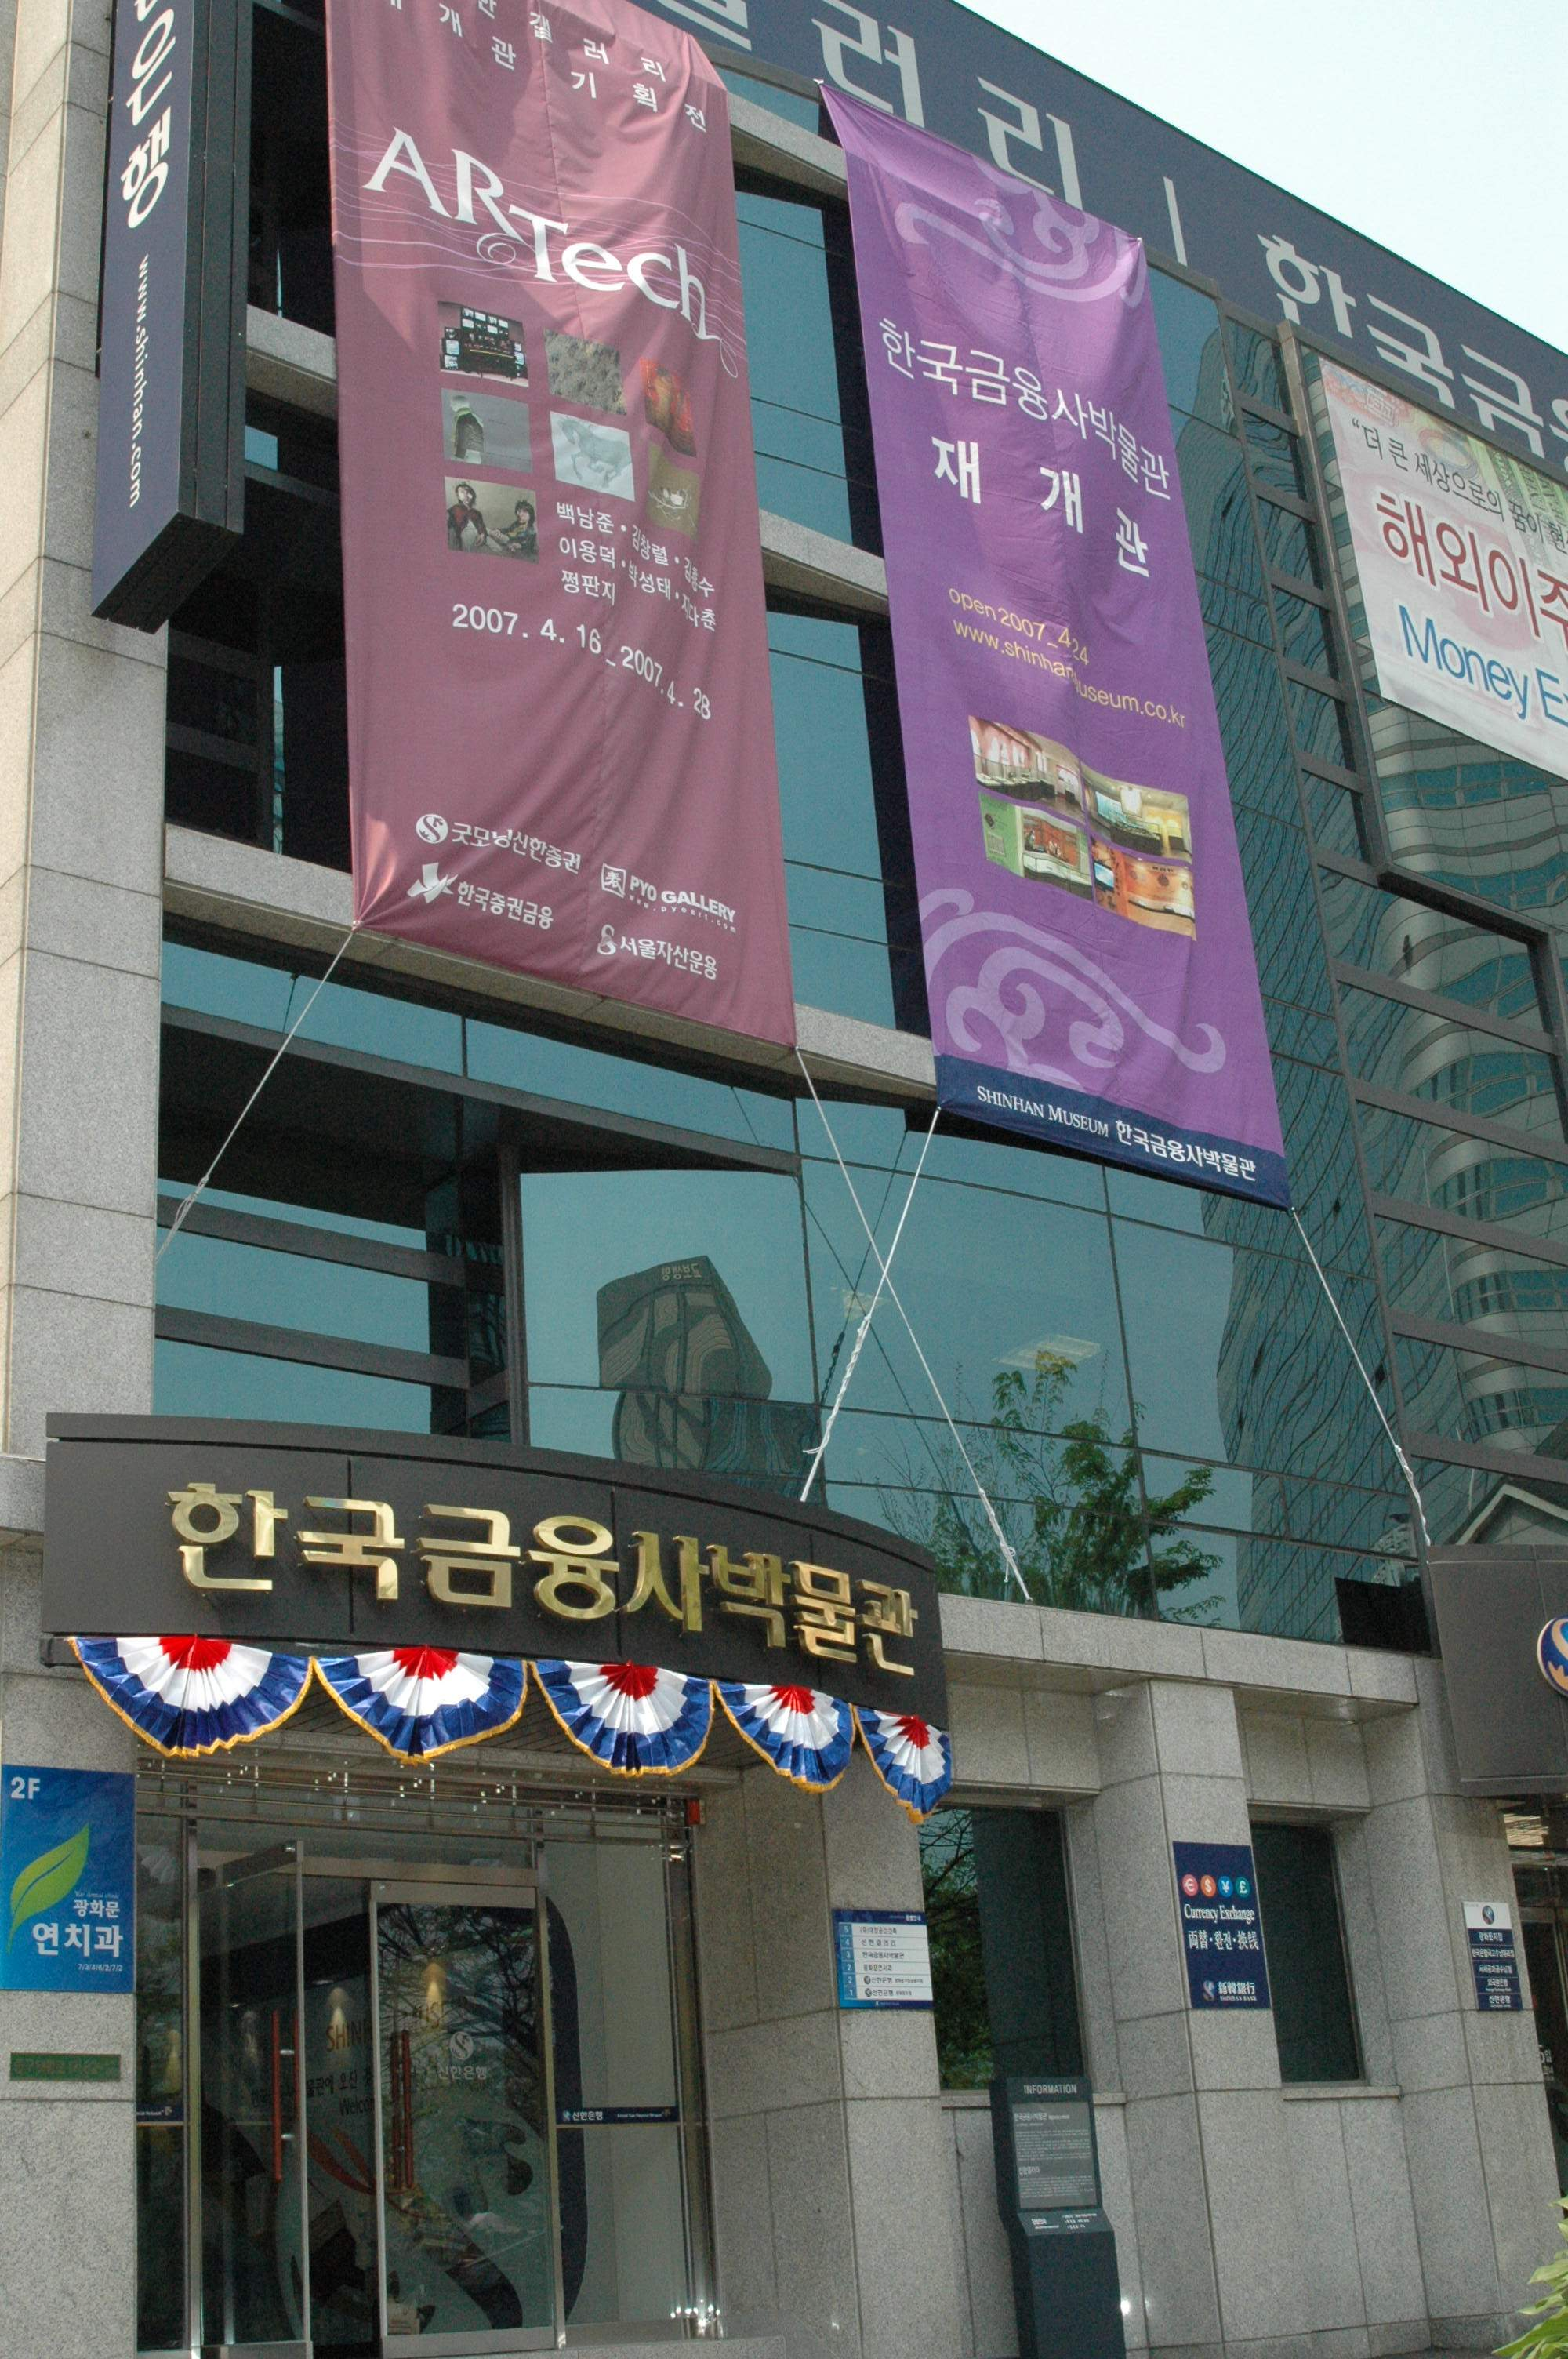 Shinhan Gallery